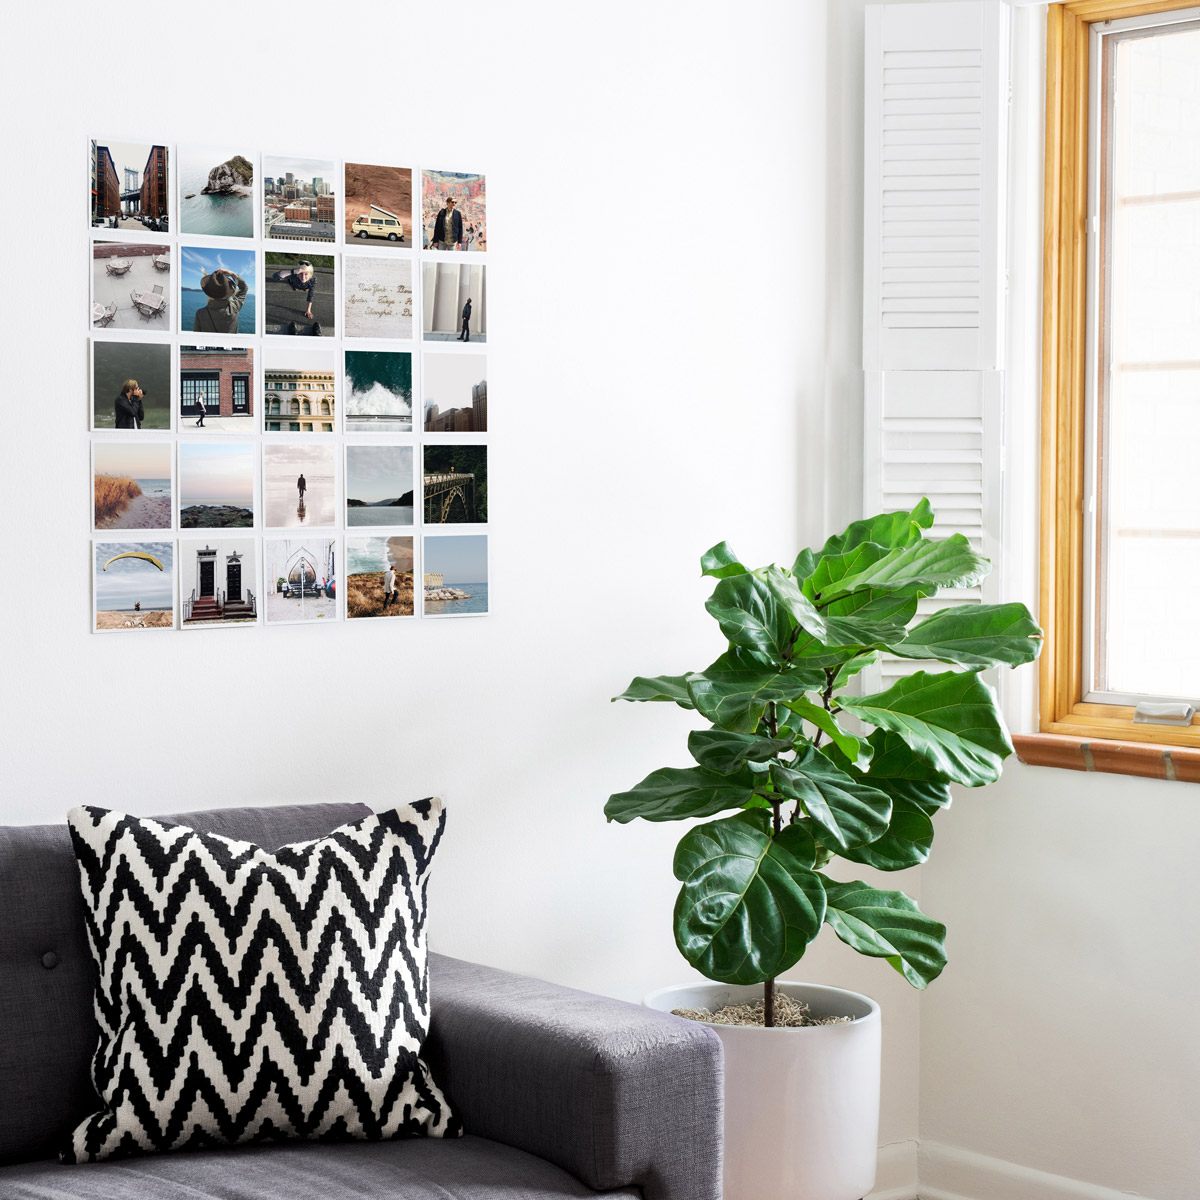 Grid of photo prints on wall above couch